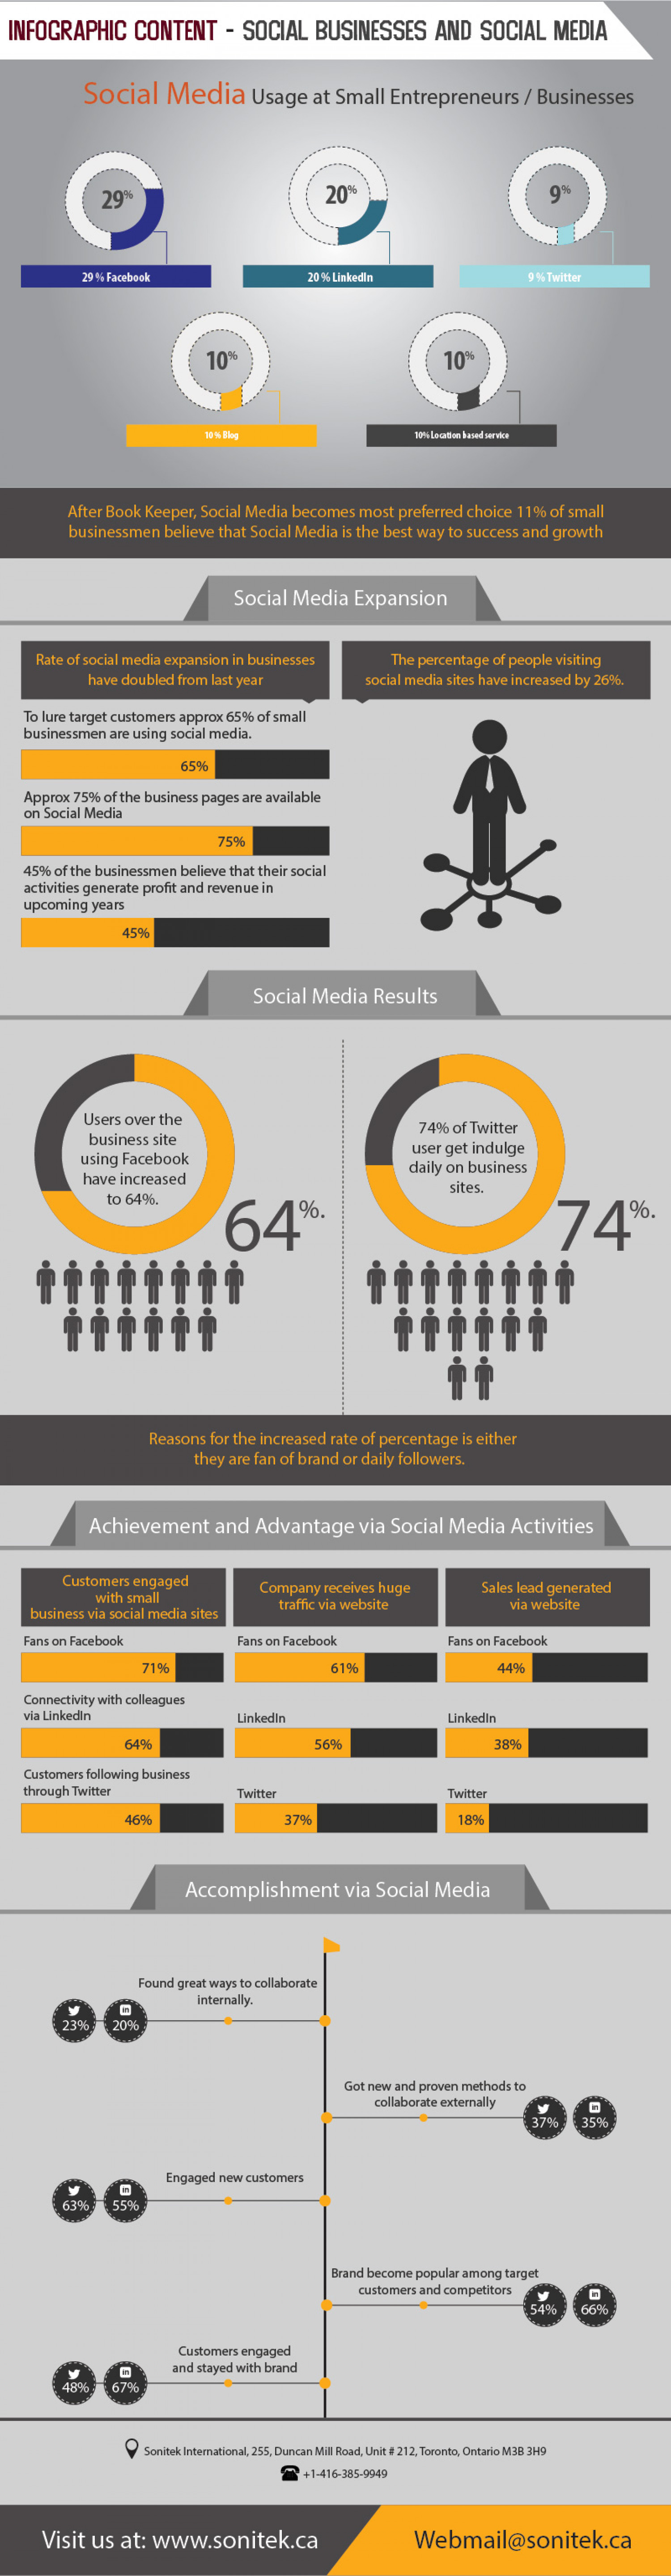 Small Entrepreneurs Rapidly Involving in Social Media Platforms for Success Driven Business Infographic